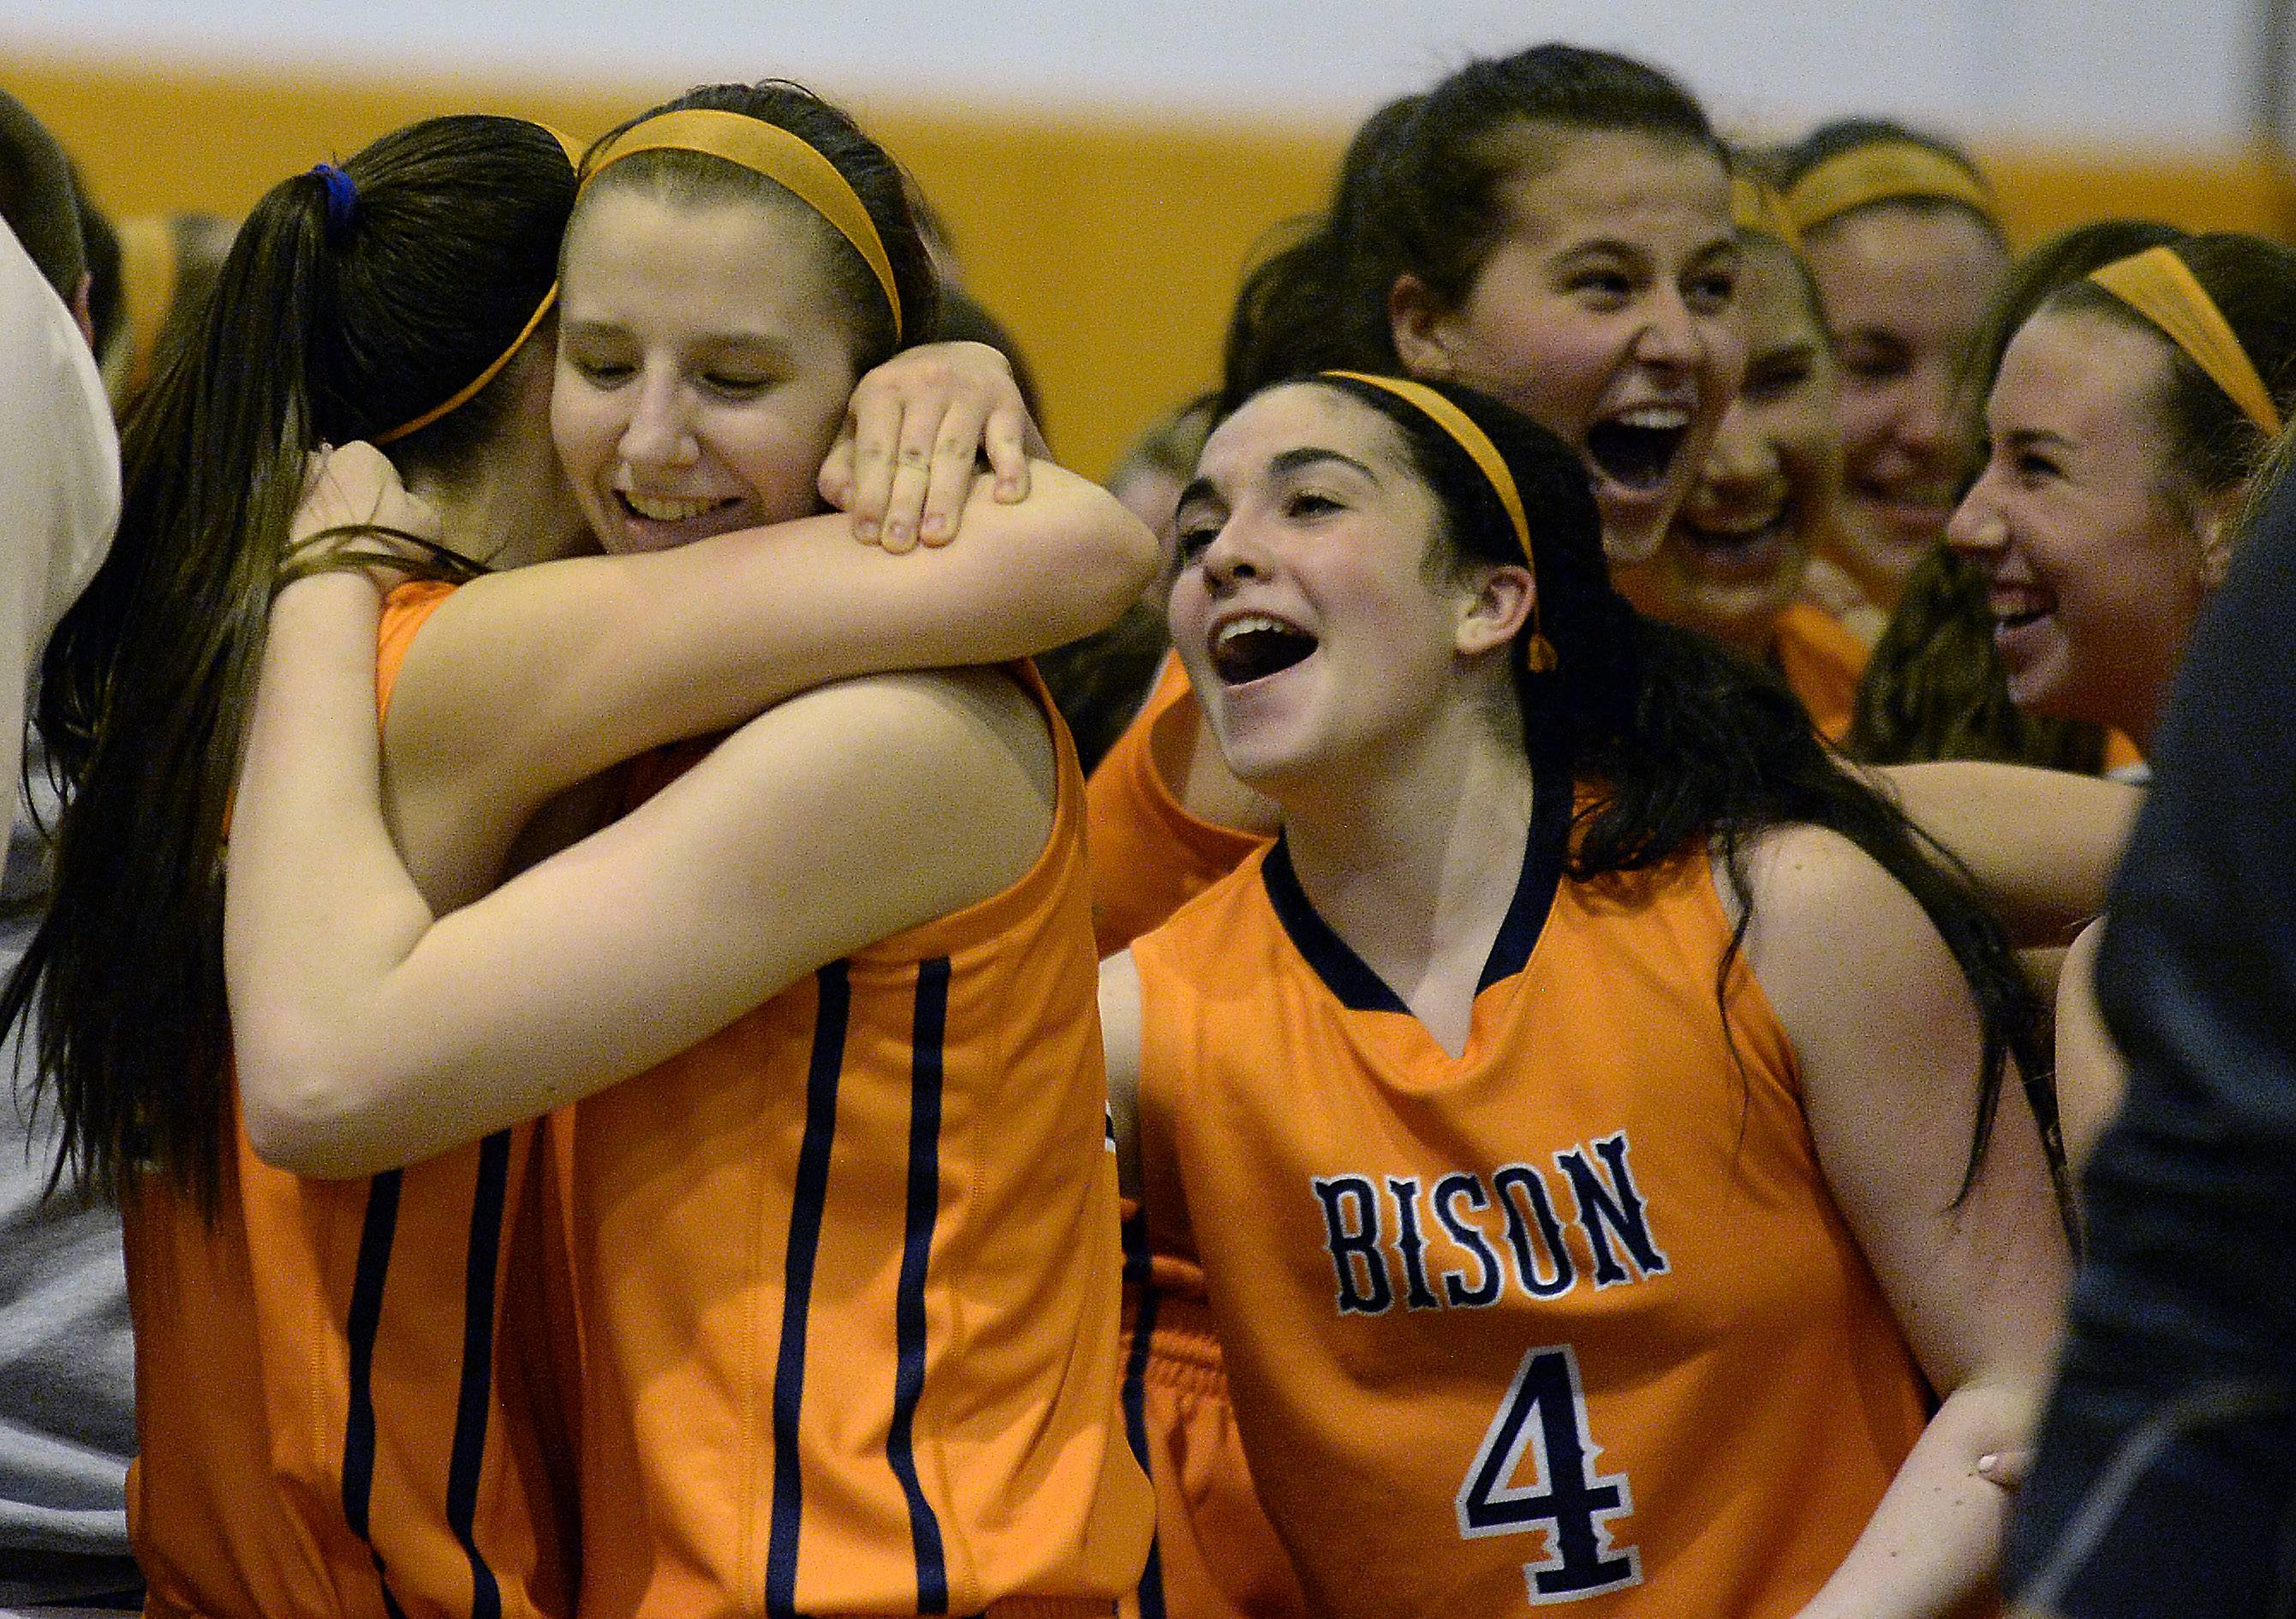 Images: Prospect vs. Buffalo Grove girls basketball